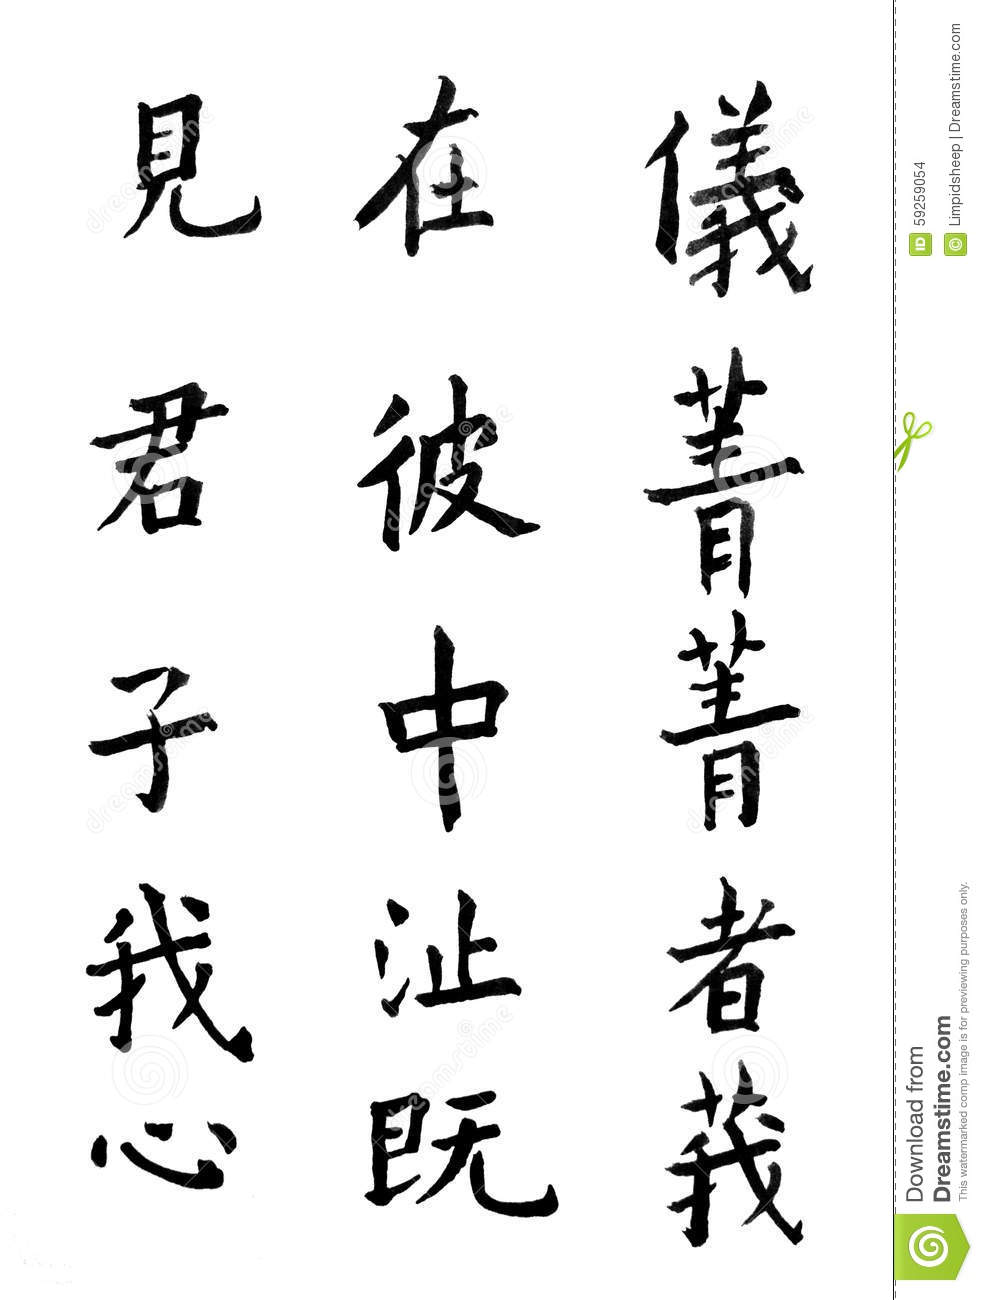 chinese symbols and letters calligraphy stock photo image of illustration fonts 59259054. Black Bedroom Furniture Sets. Home Design Ideas